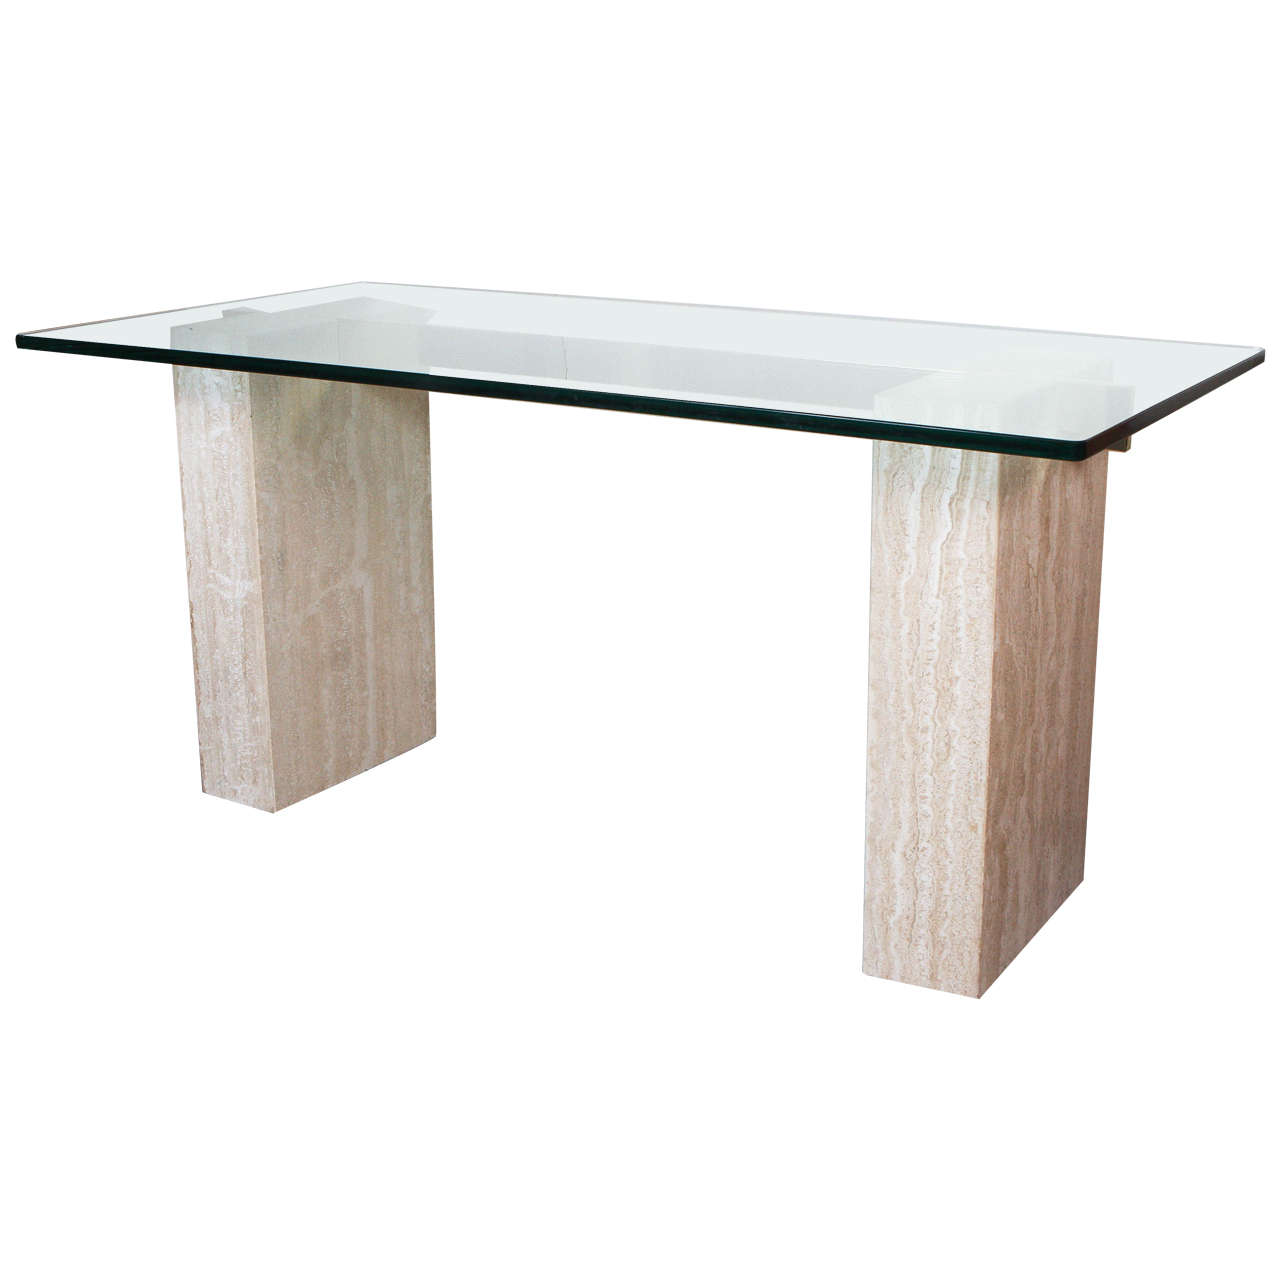 Travertine and glass dining table, 1980s